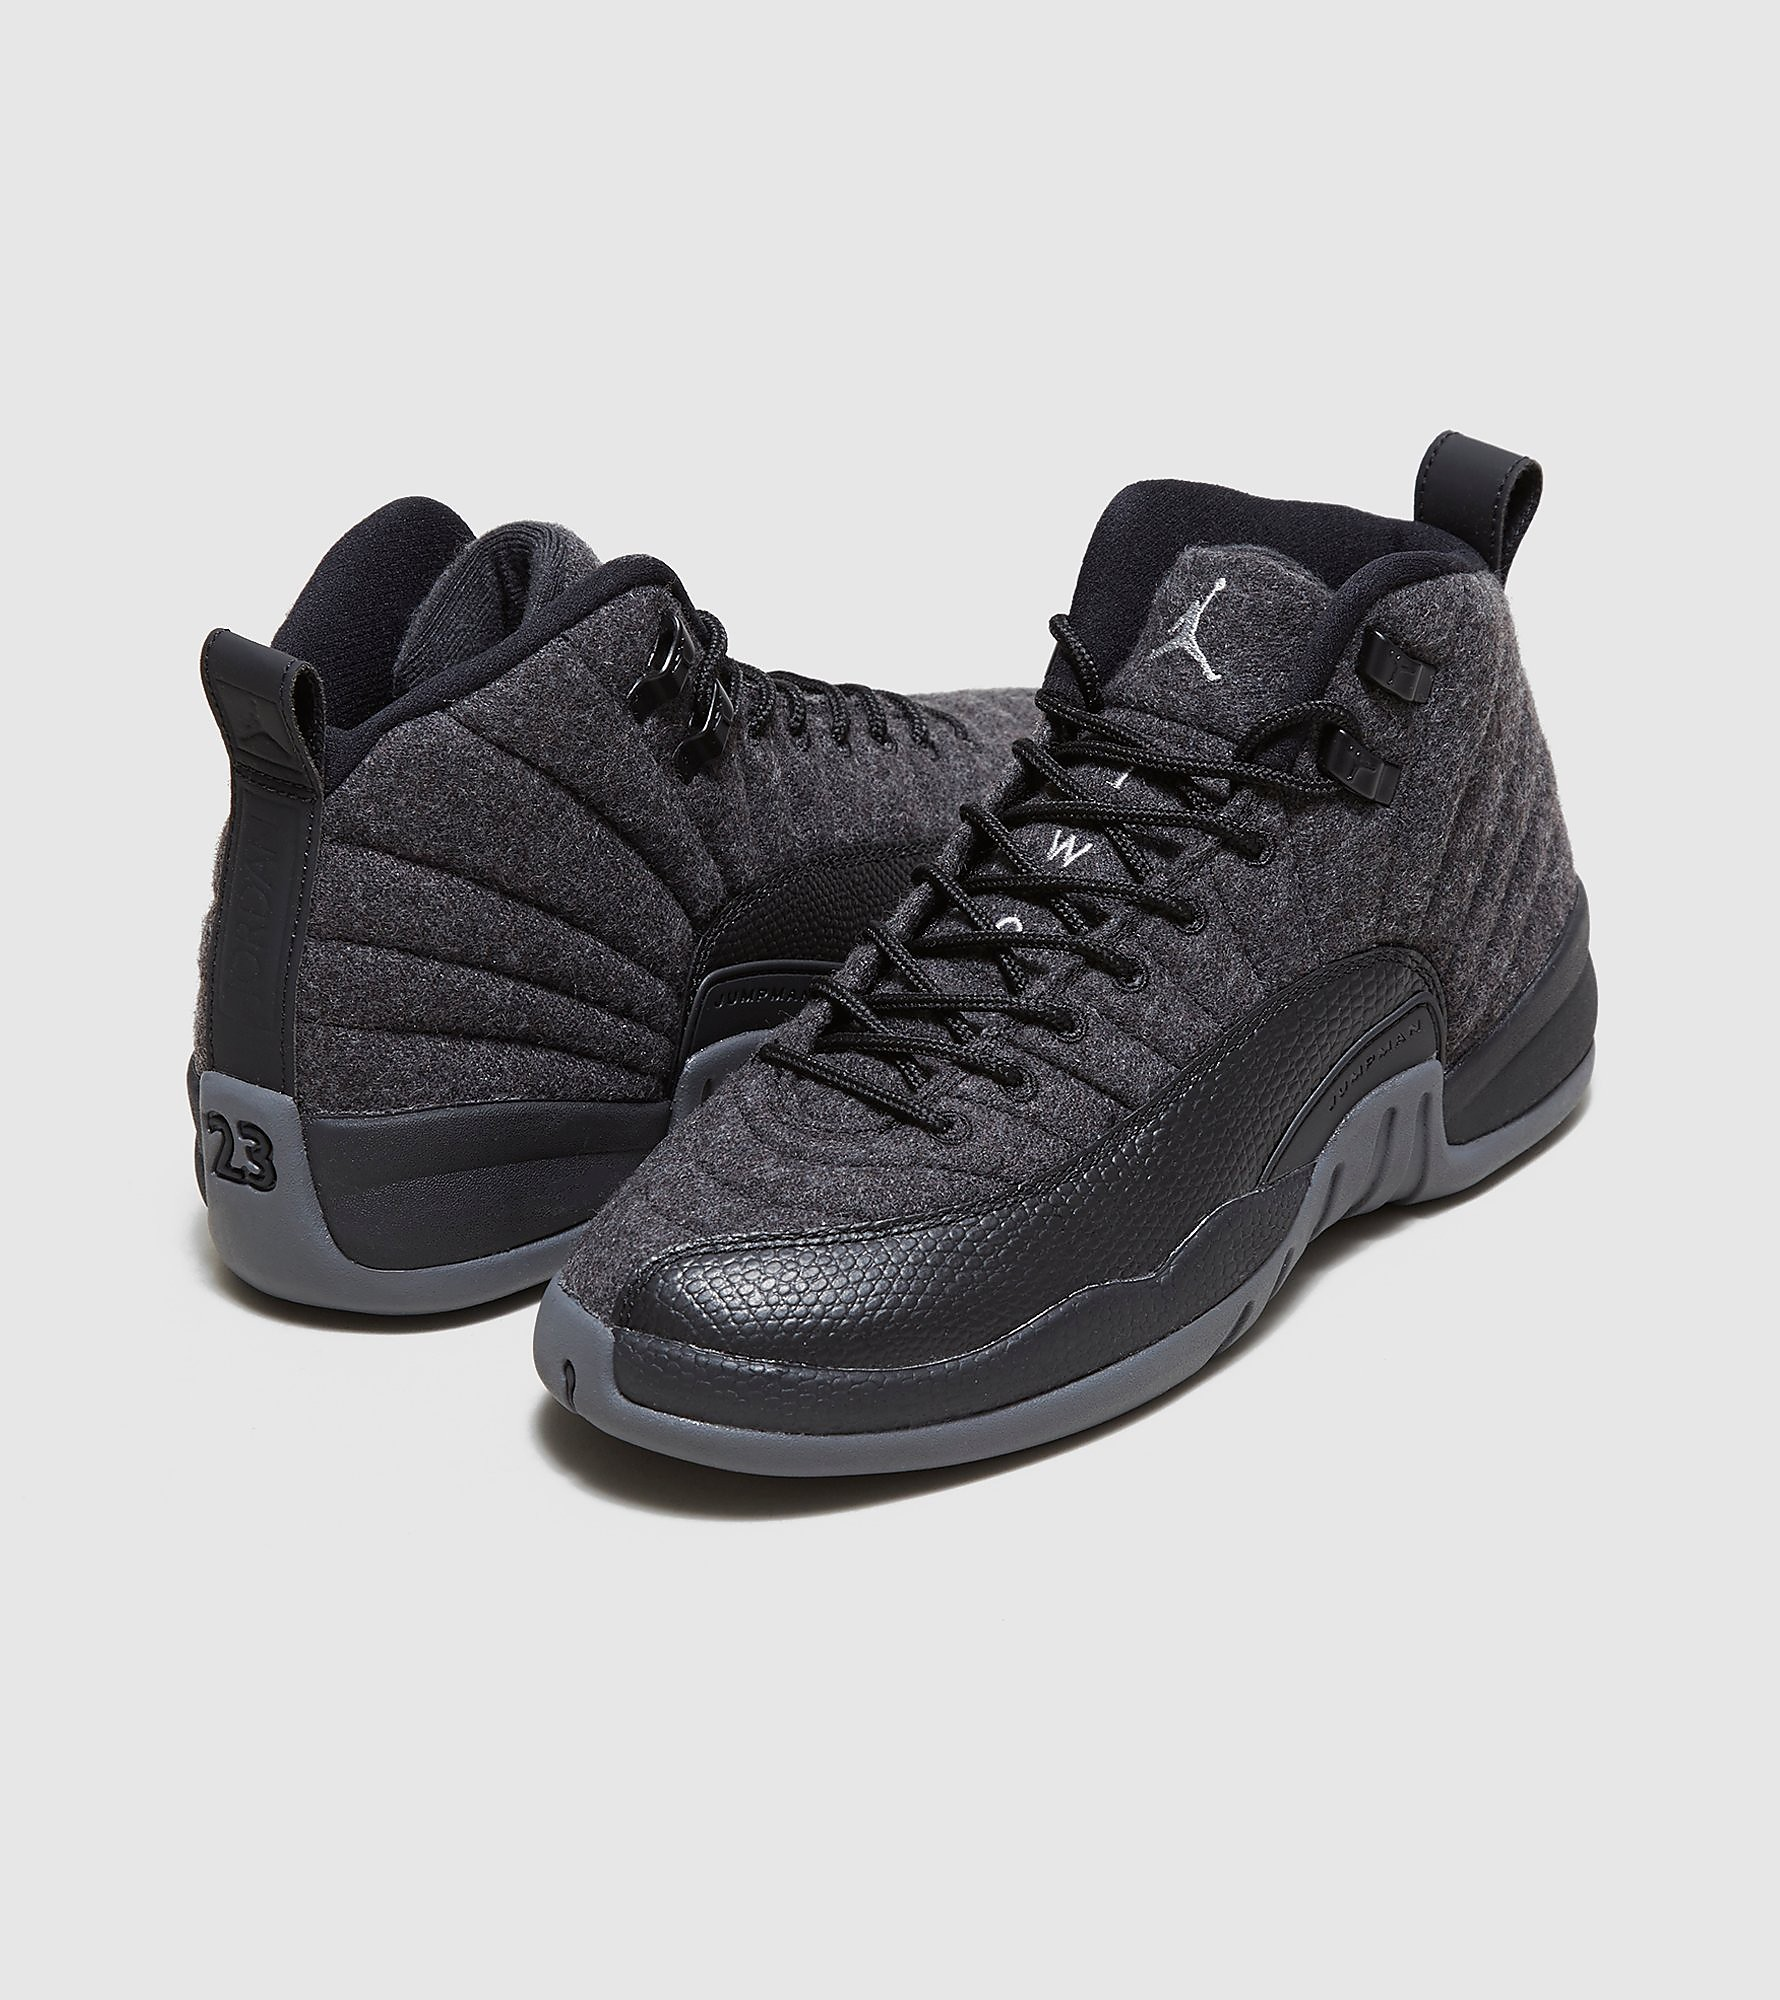 Jordan 12 Retro 'Wool' BG